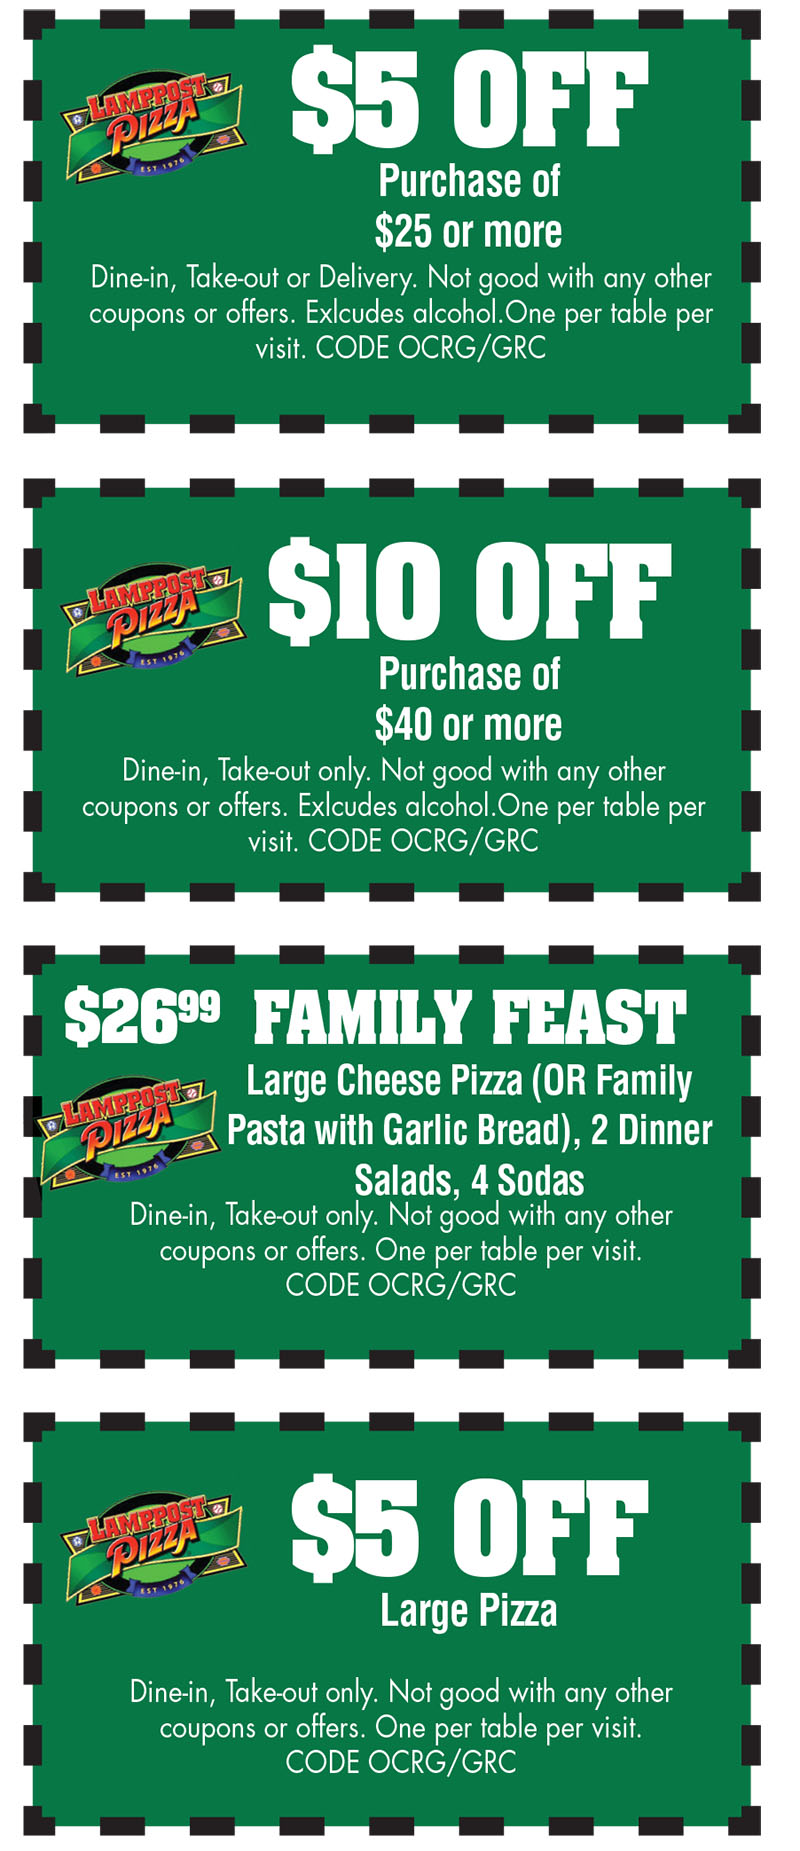 Get Pizza Specials in Irvine Ca - Best Pizza Restaurant Irvine has to offer. Family Restaurant with pizza, beer, sports TV. Lamppost Irvine Coupons. Click to Download, Print & Clip Coupon, or Present On Mobile Device. Lamppost Pizza Irvine, CA () Order Online.